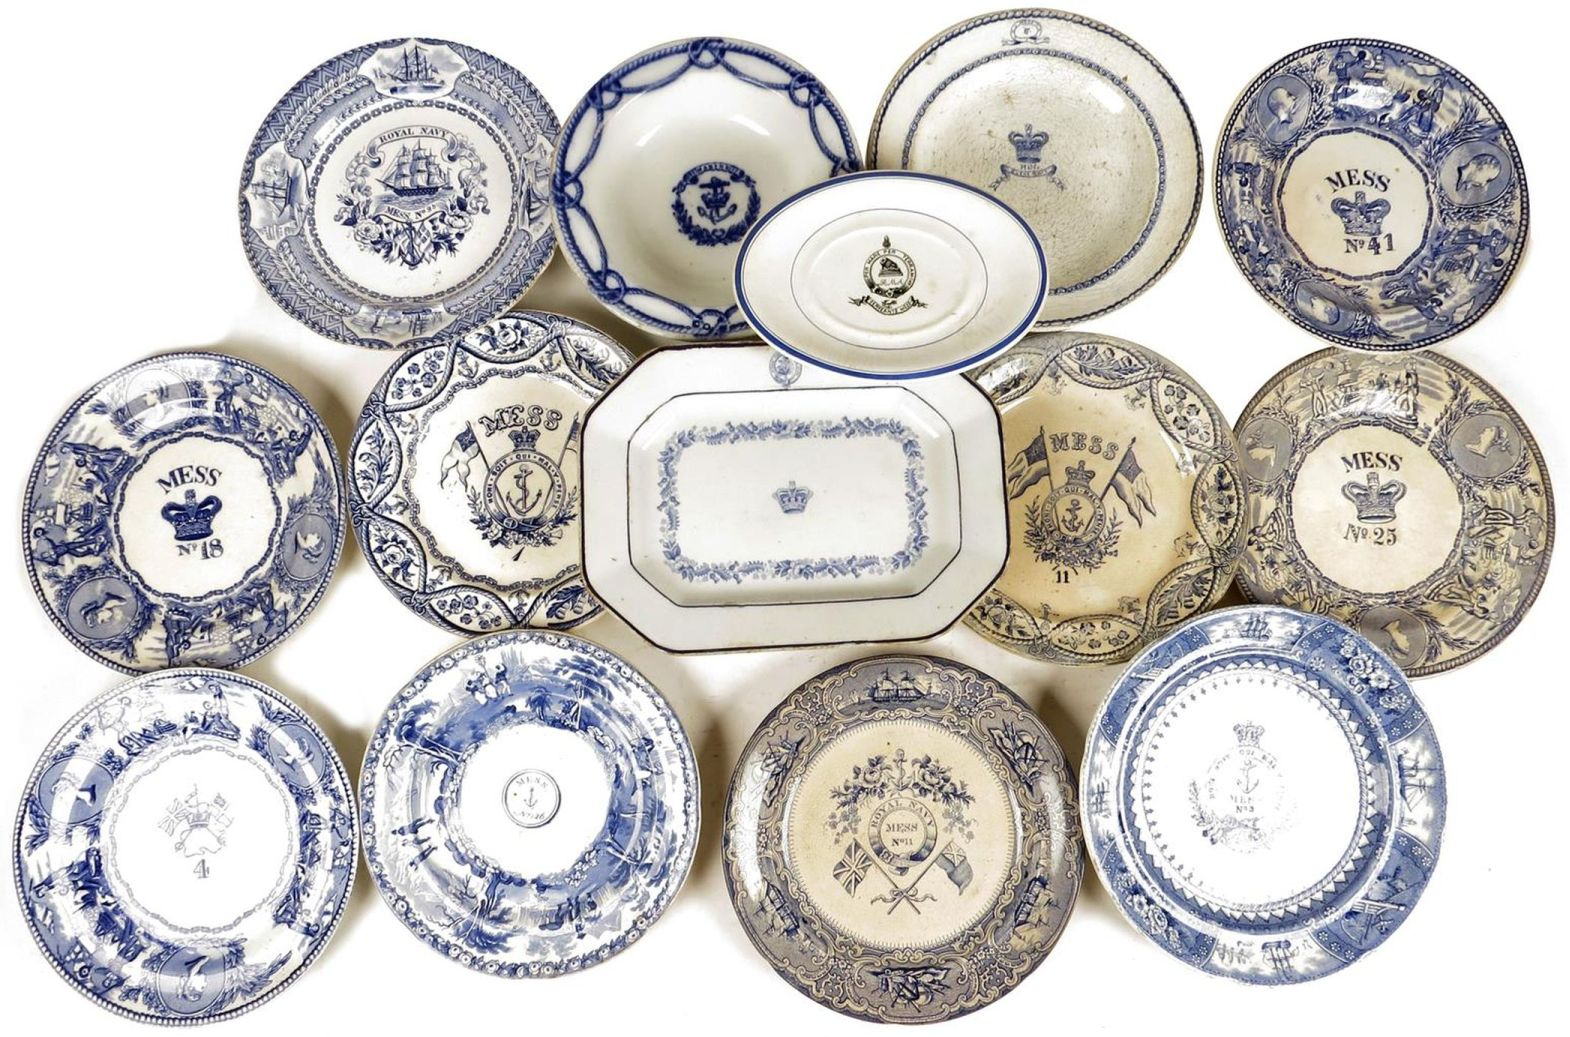 ... british royal navy 19th century mess plates and mess bowls  sc 1 st  The Pirate\u0027s Lair & Identification British Royal Navy Mess Plates Bowls 1800s-1930s ...